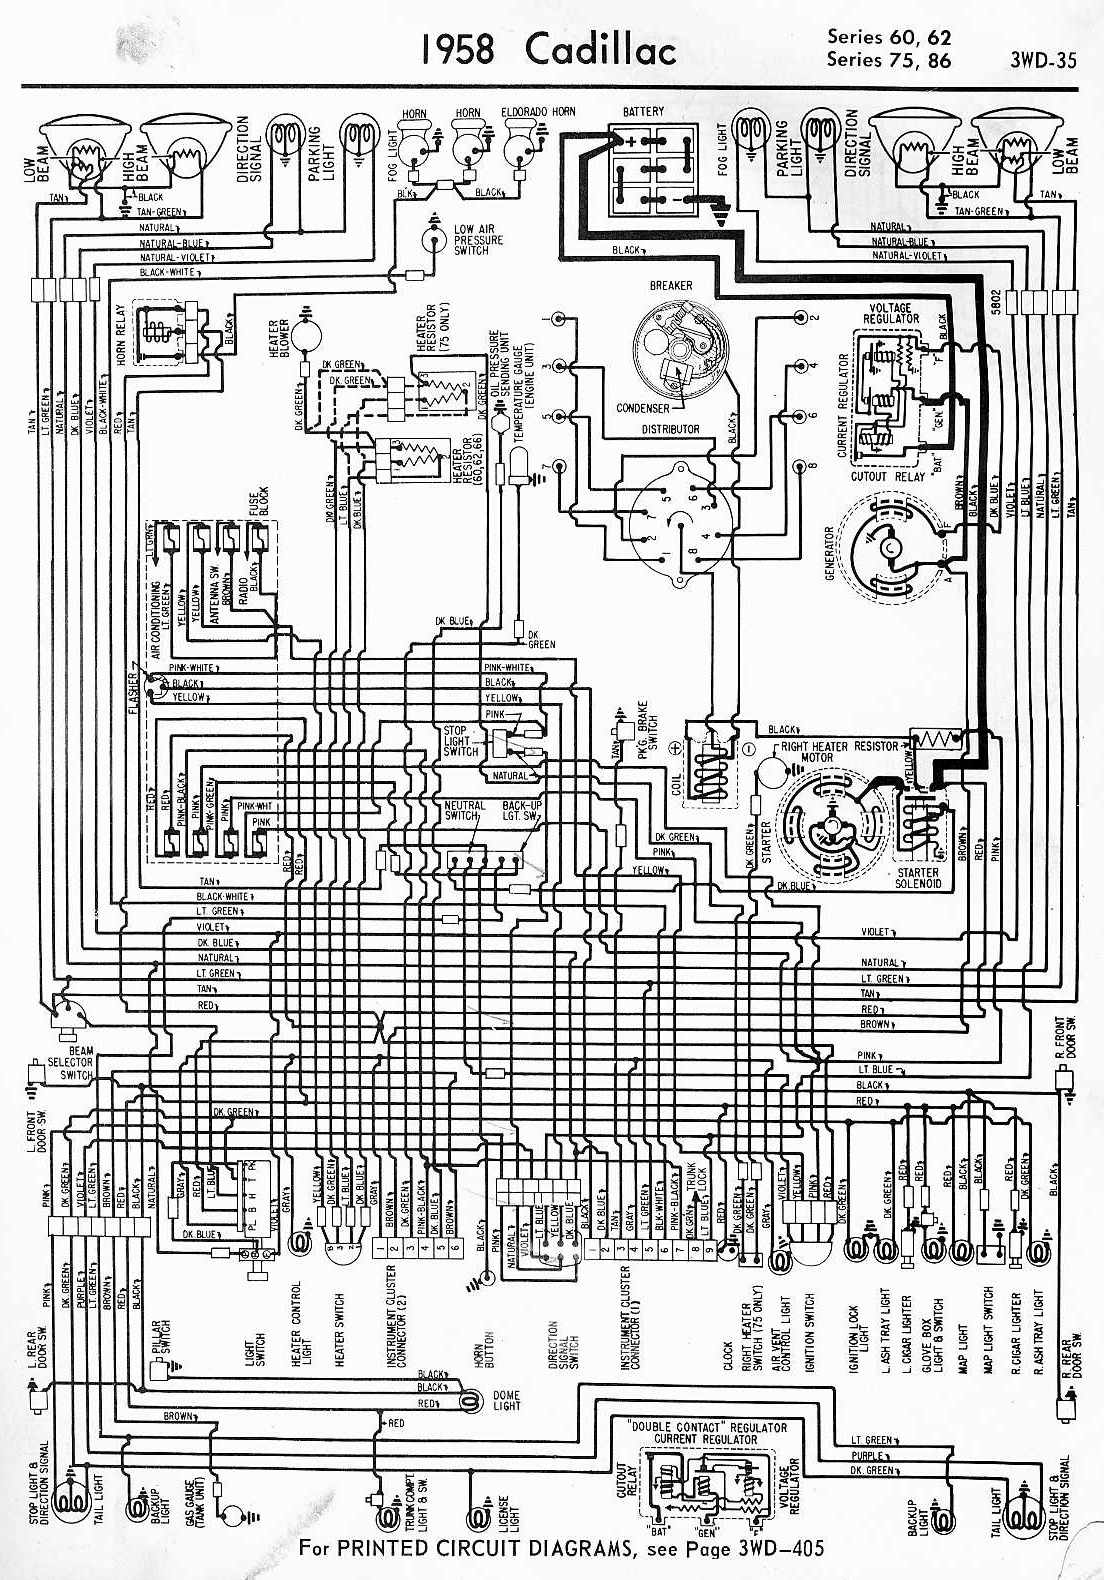 1959 Cadillac Radio Wiring Diagram | Wiring Diagram on